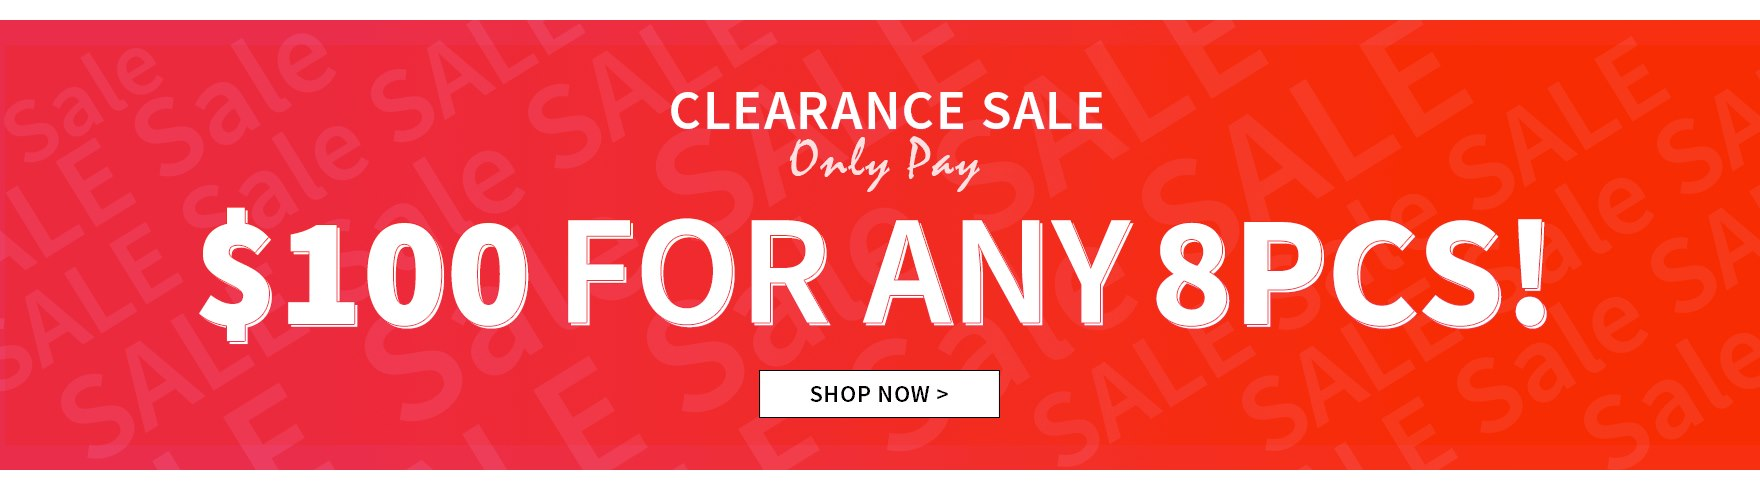 Black Friday Warm Up: 5% Off WOMEN'S & MEN'S & ACCESSORIES Over $69